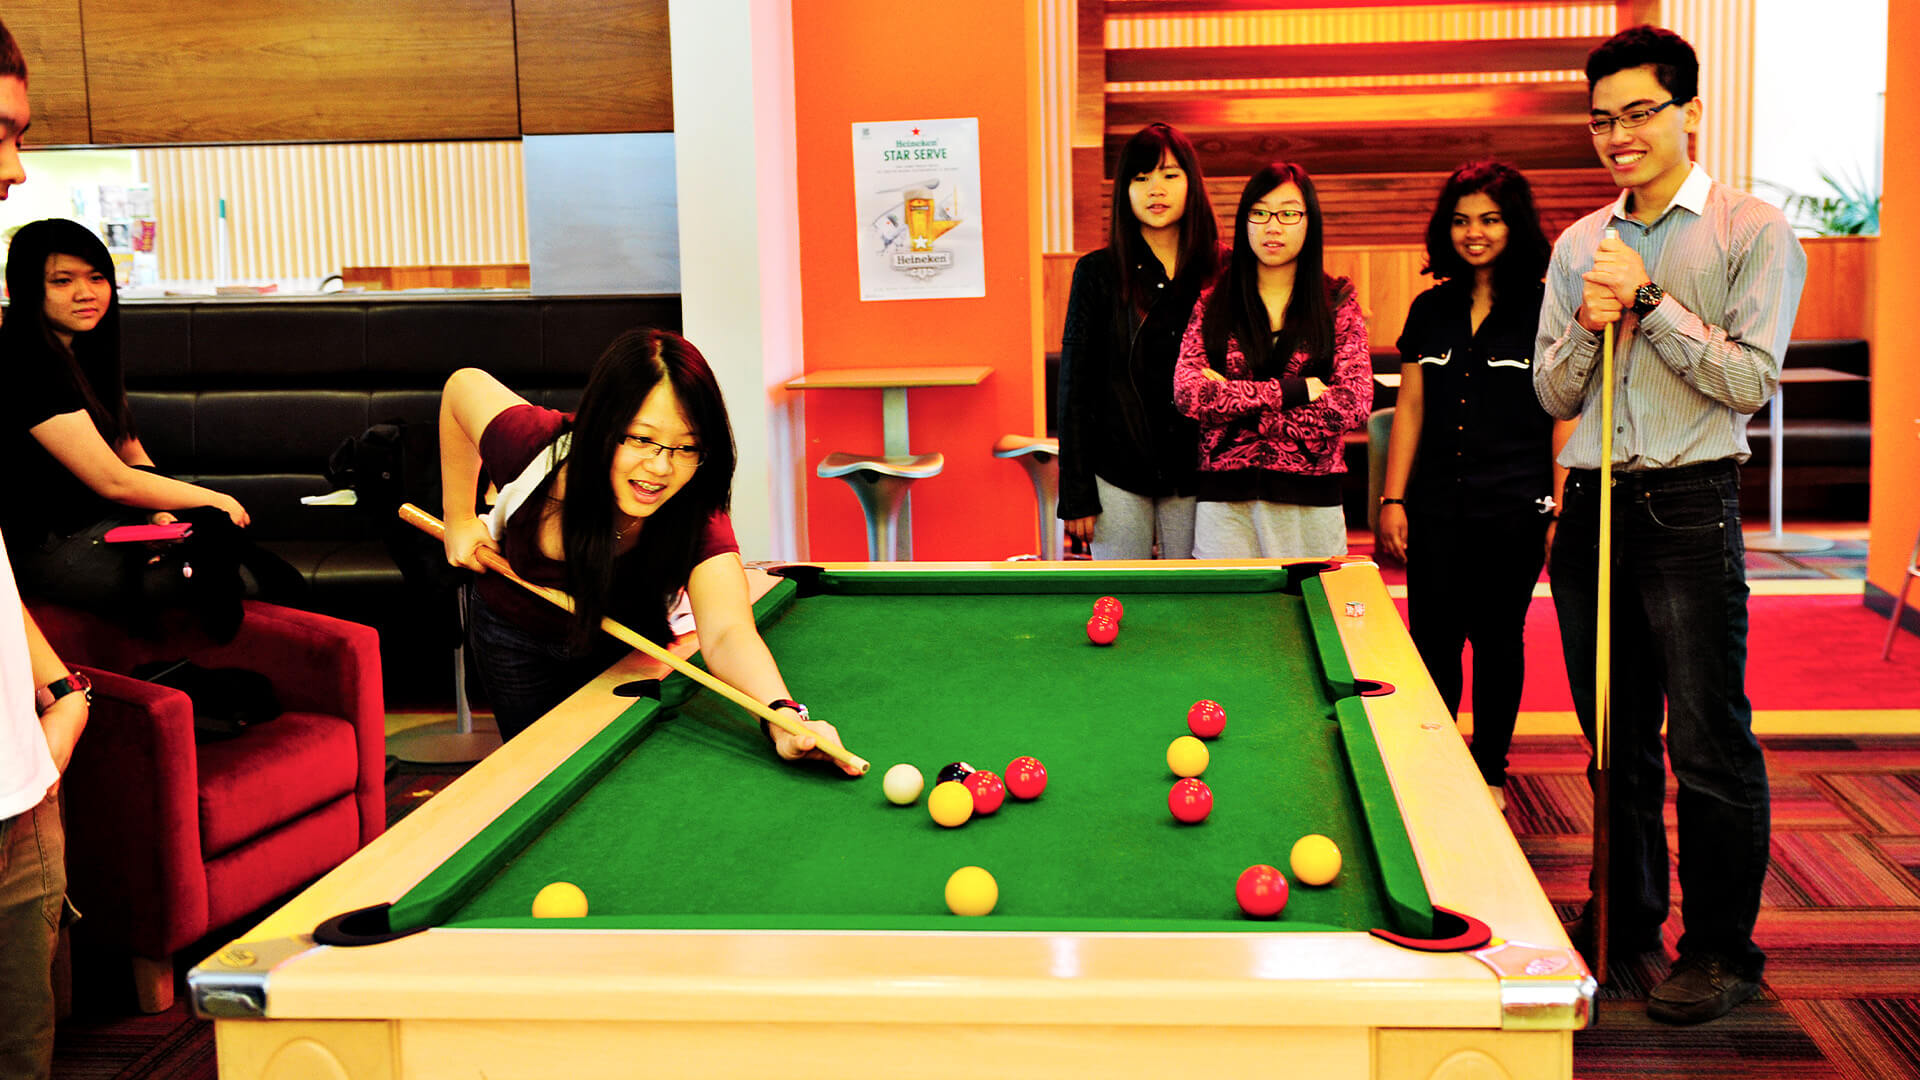 International students playing pool at Queen's University Belfast